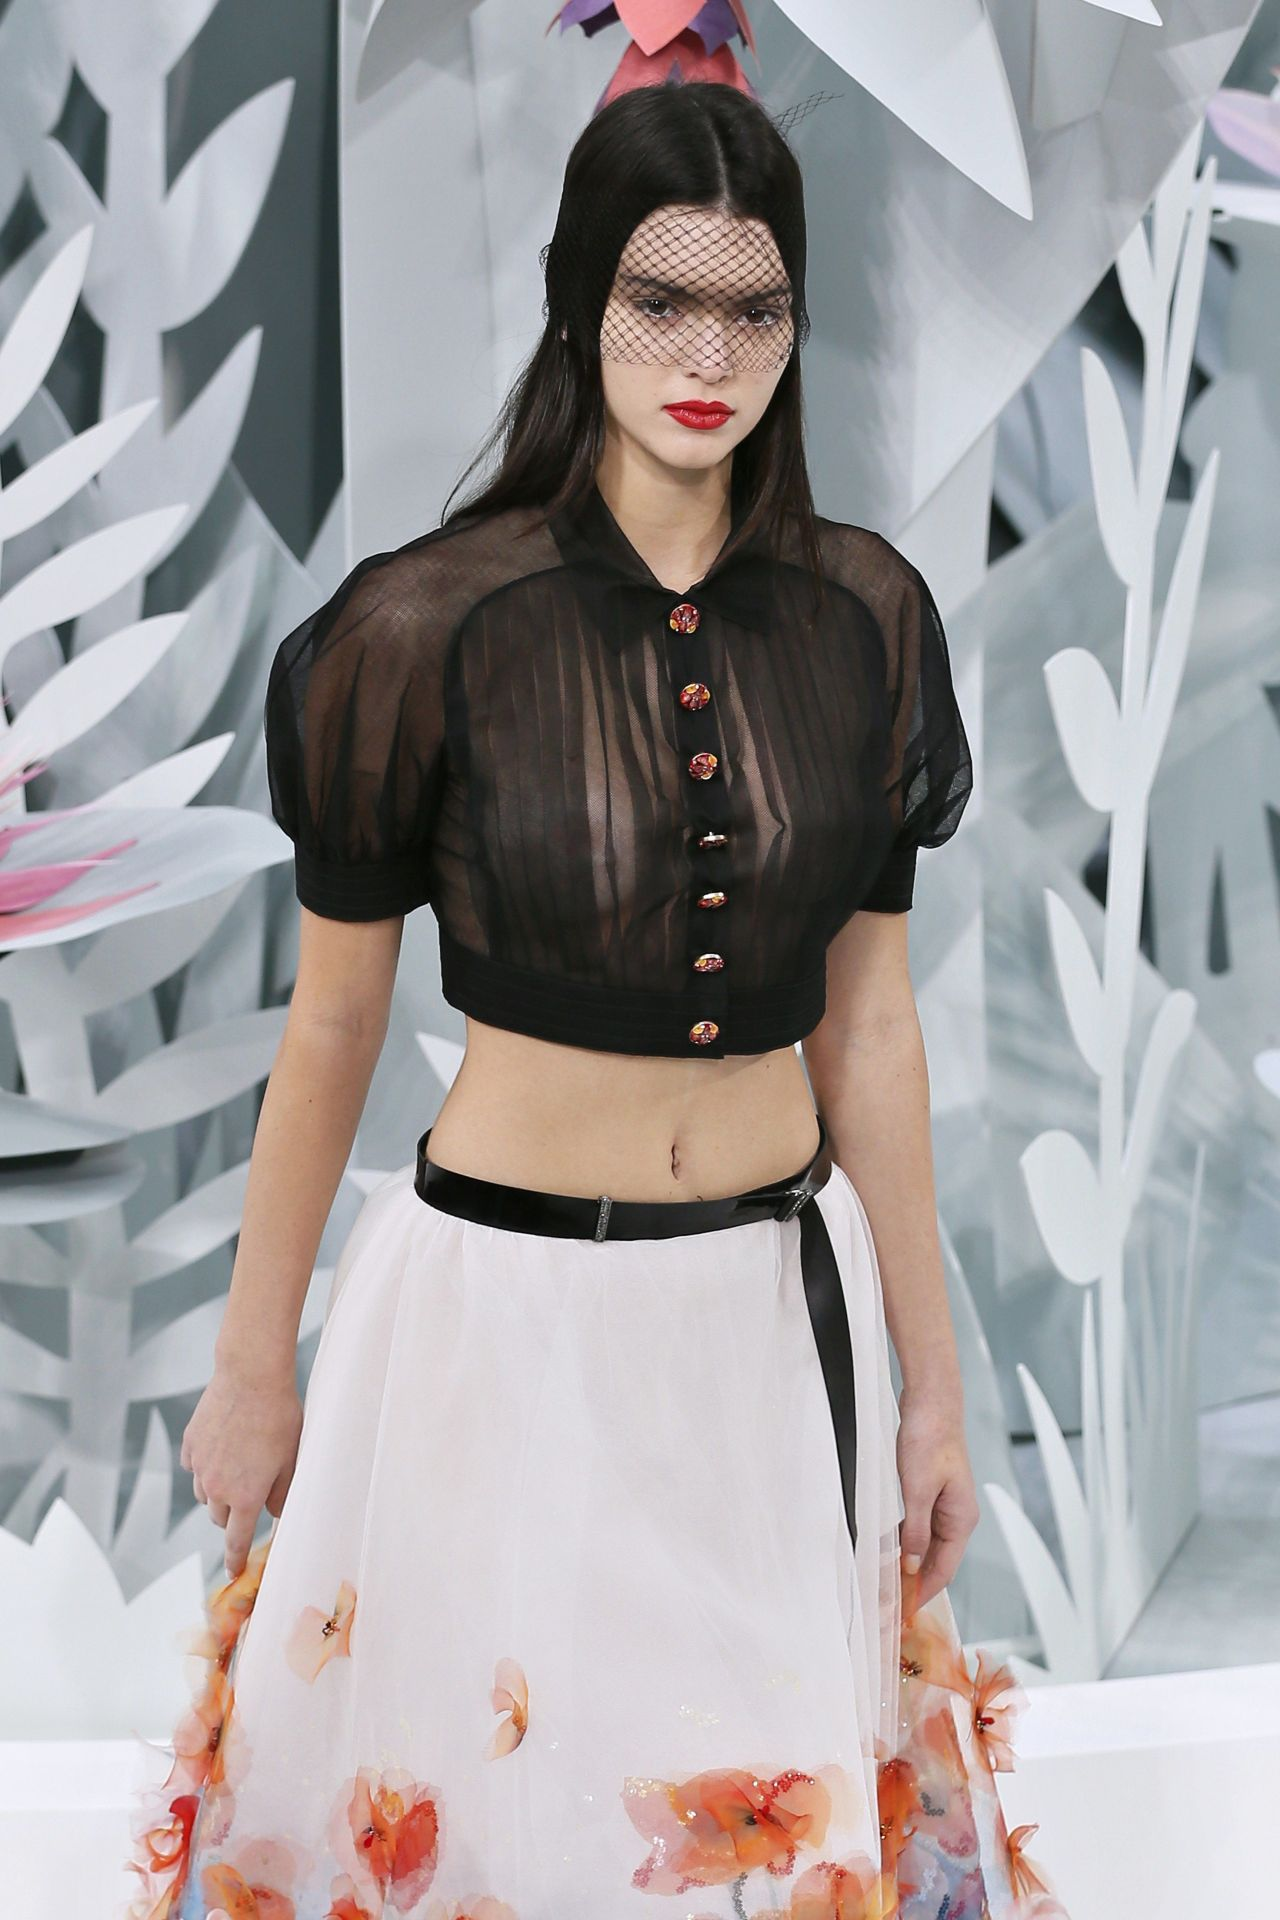 Chanel kendall 2015 jenner fashion show